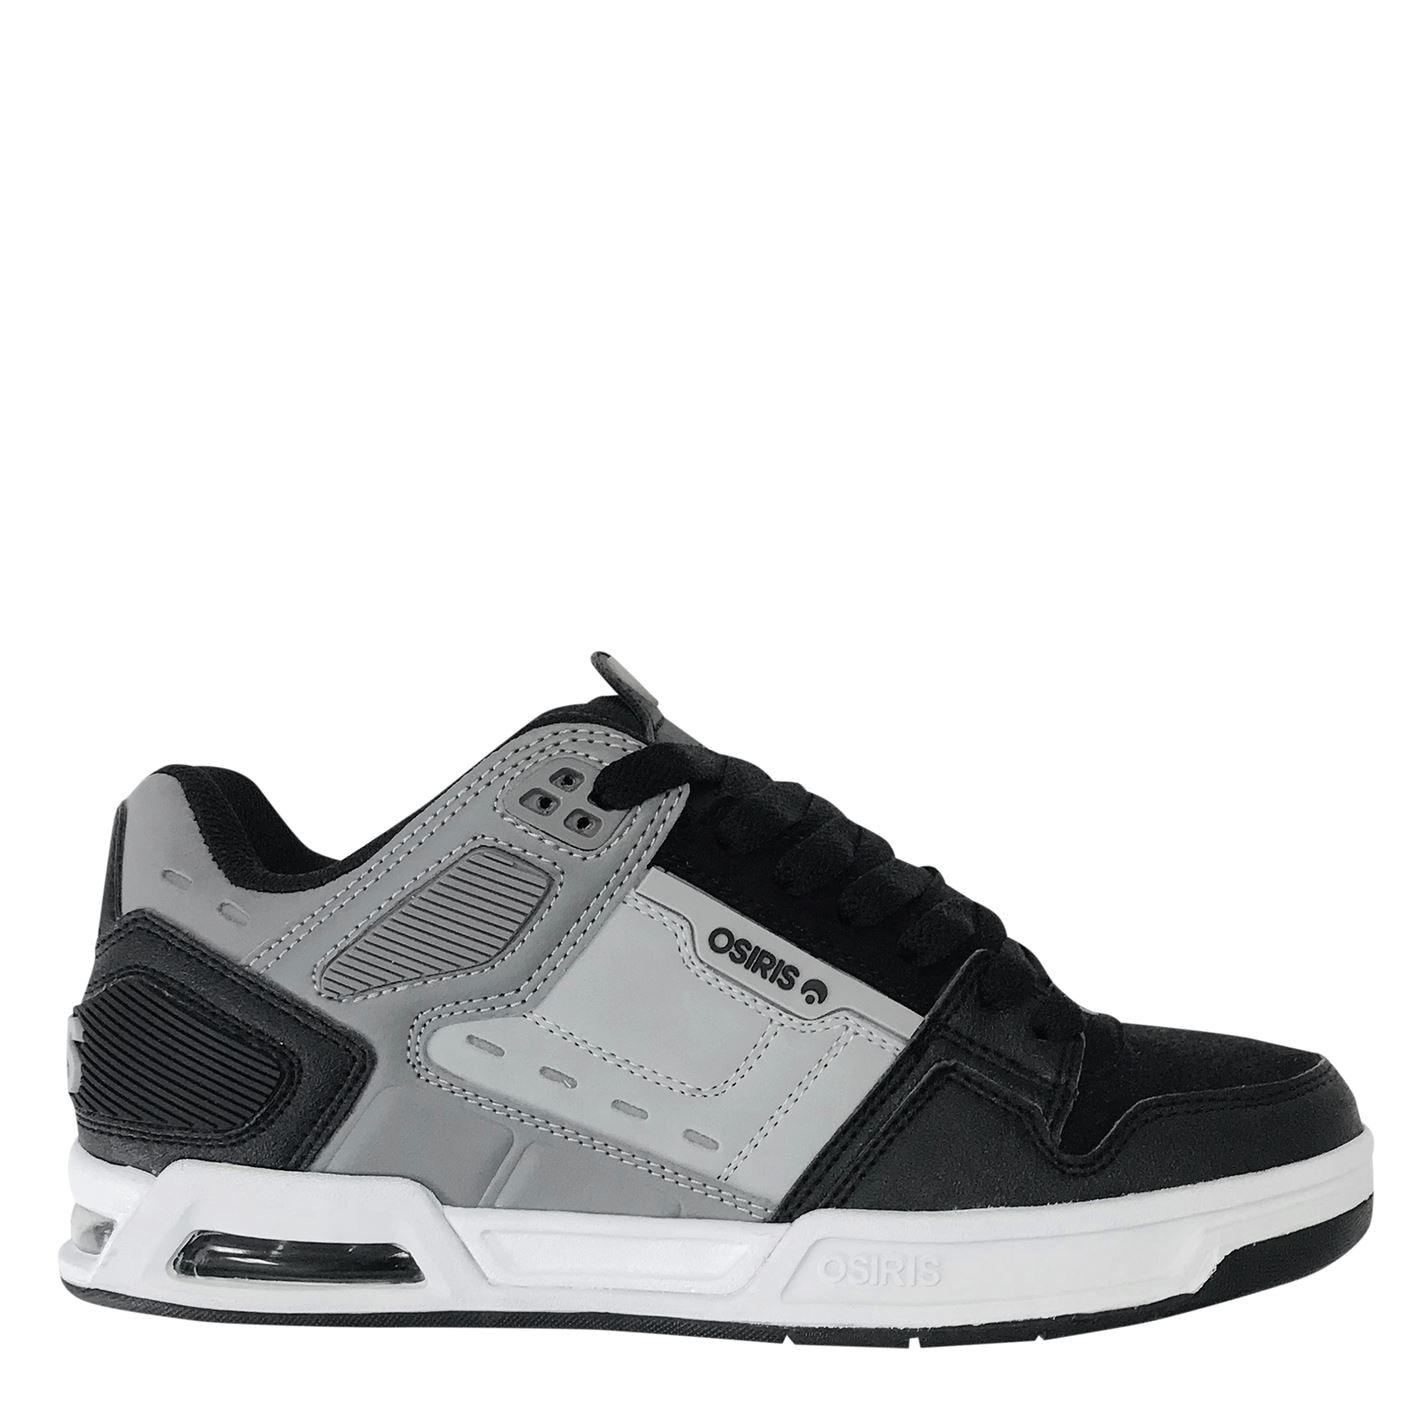 mens skate shoes